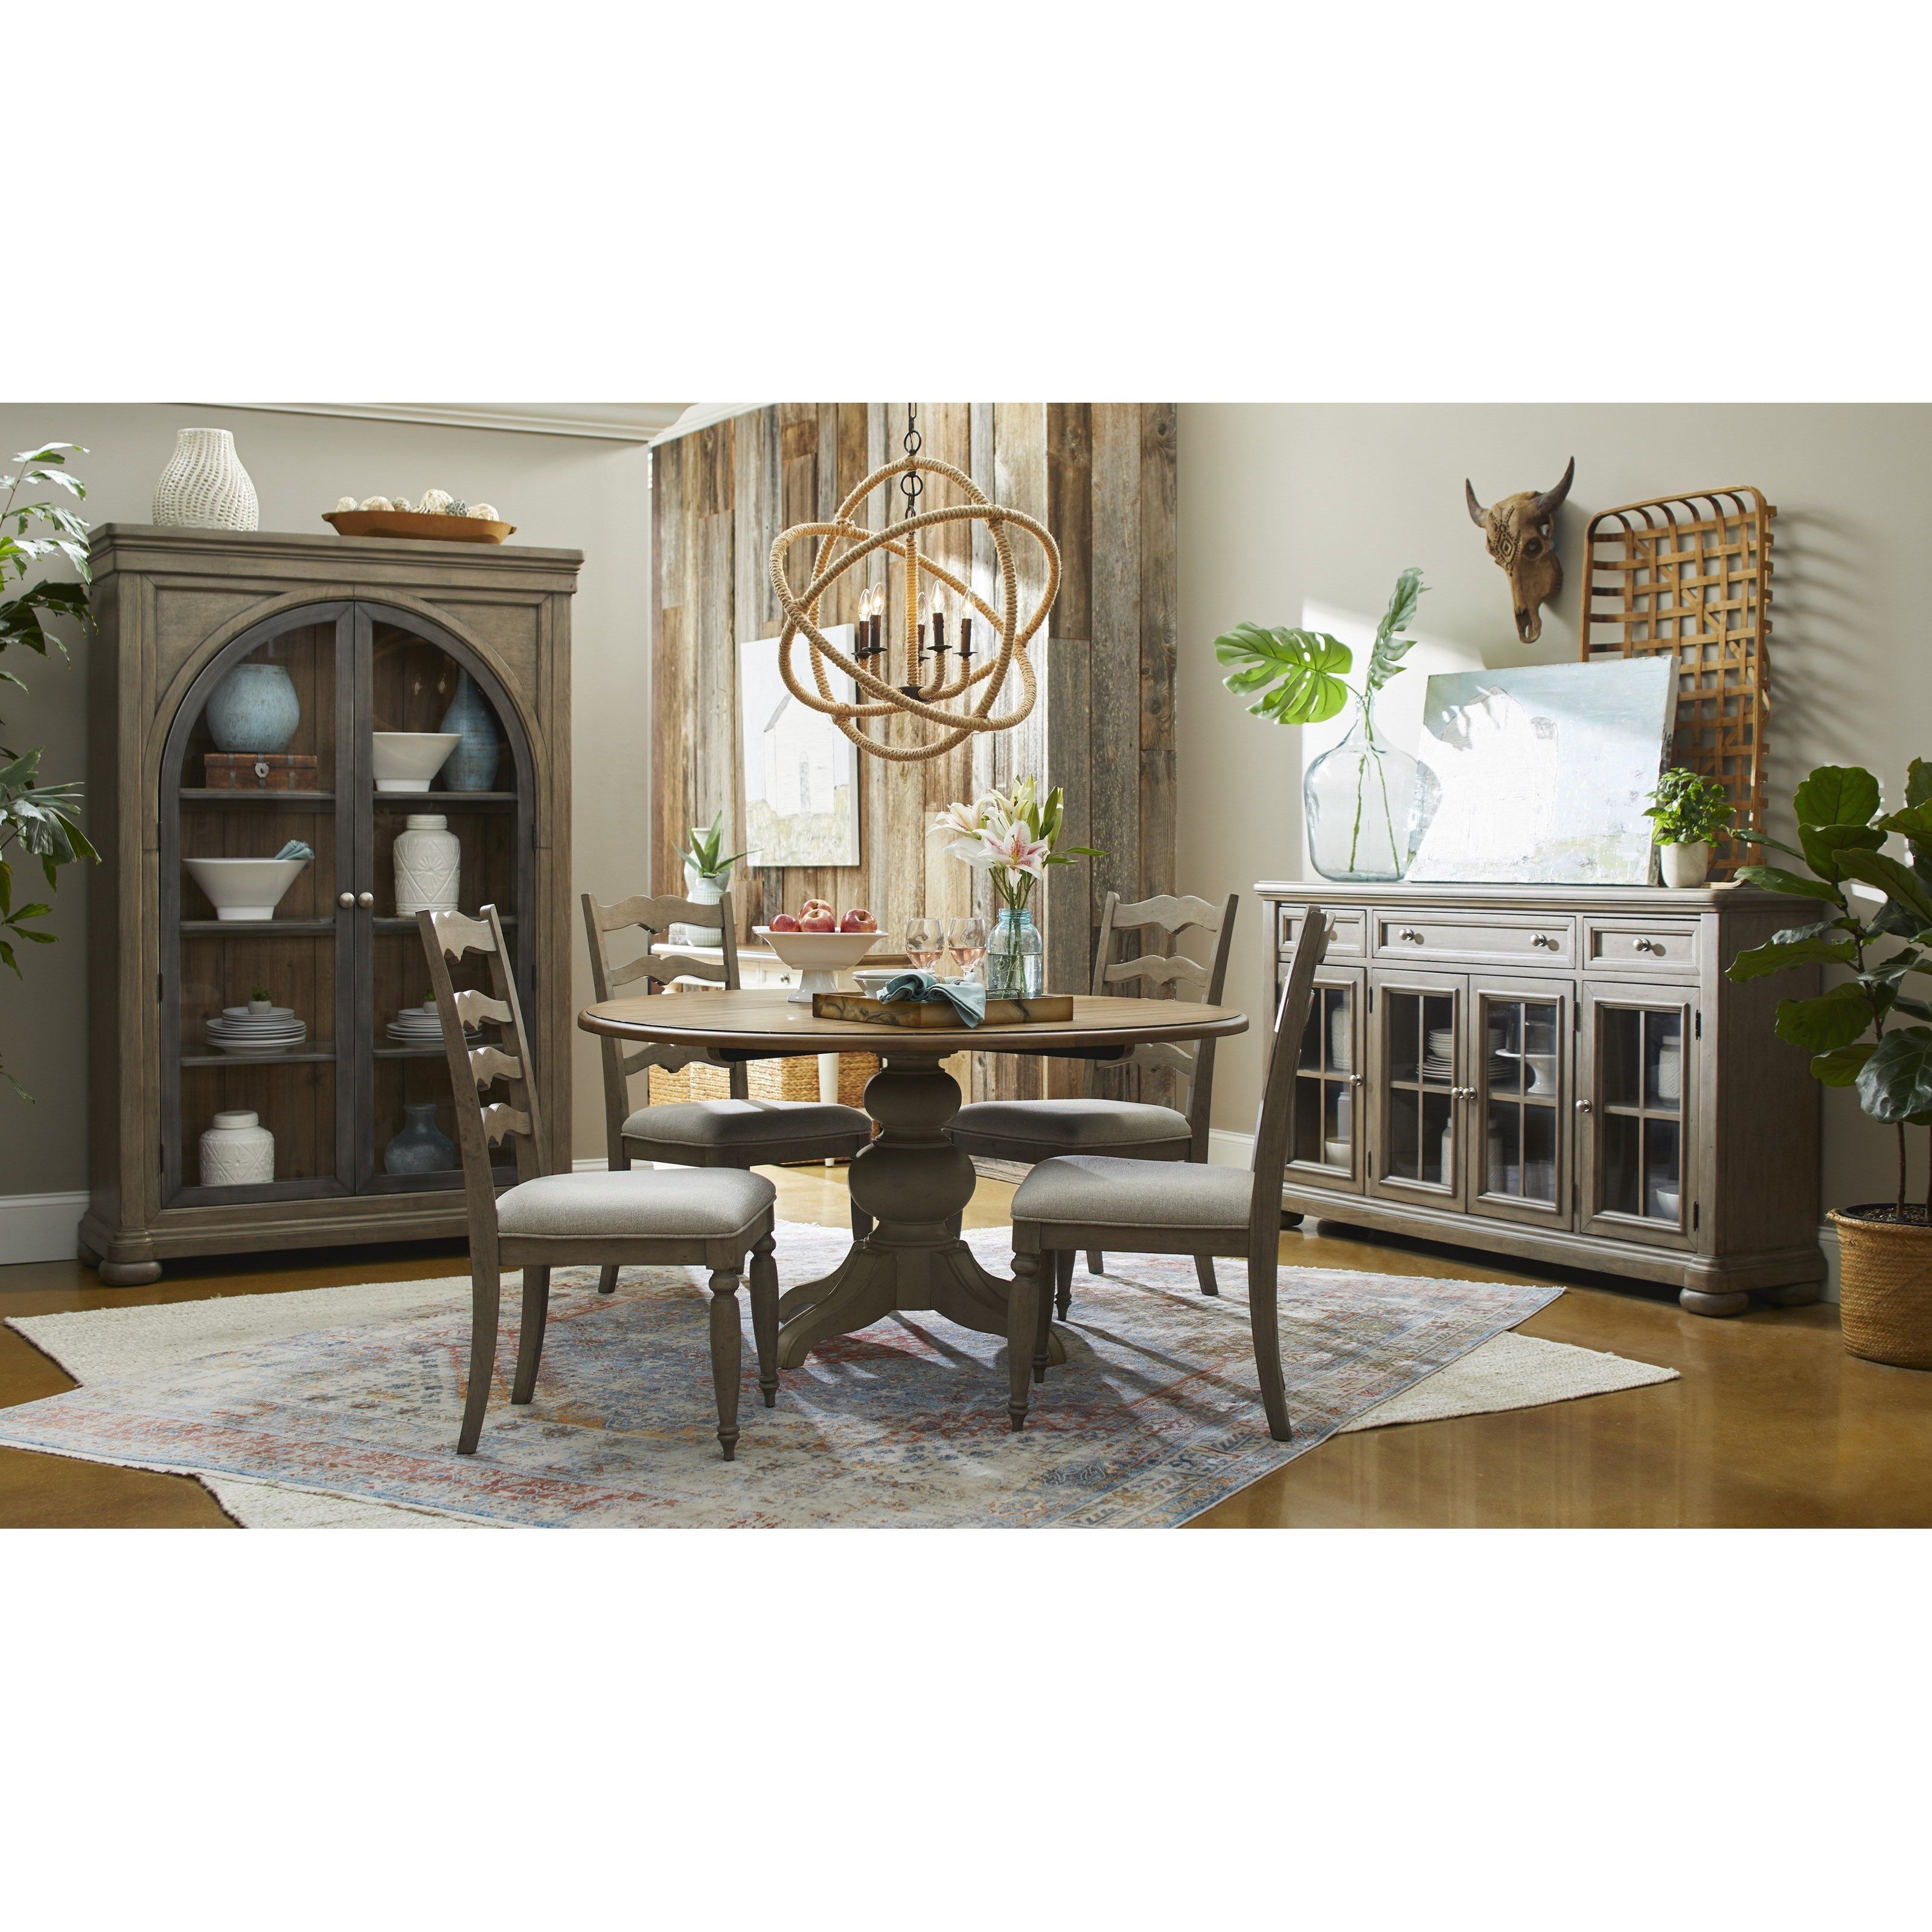 Nashville Casual Dining Room Group by Trisha Yearwood Home Collection by Klaussner at Powell's Furniture and Mattress